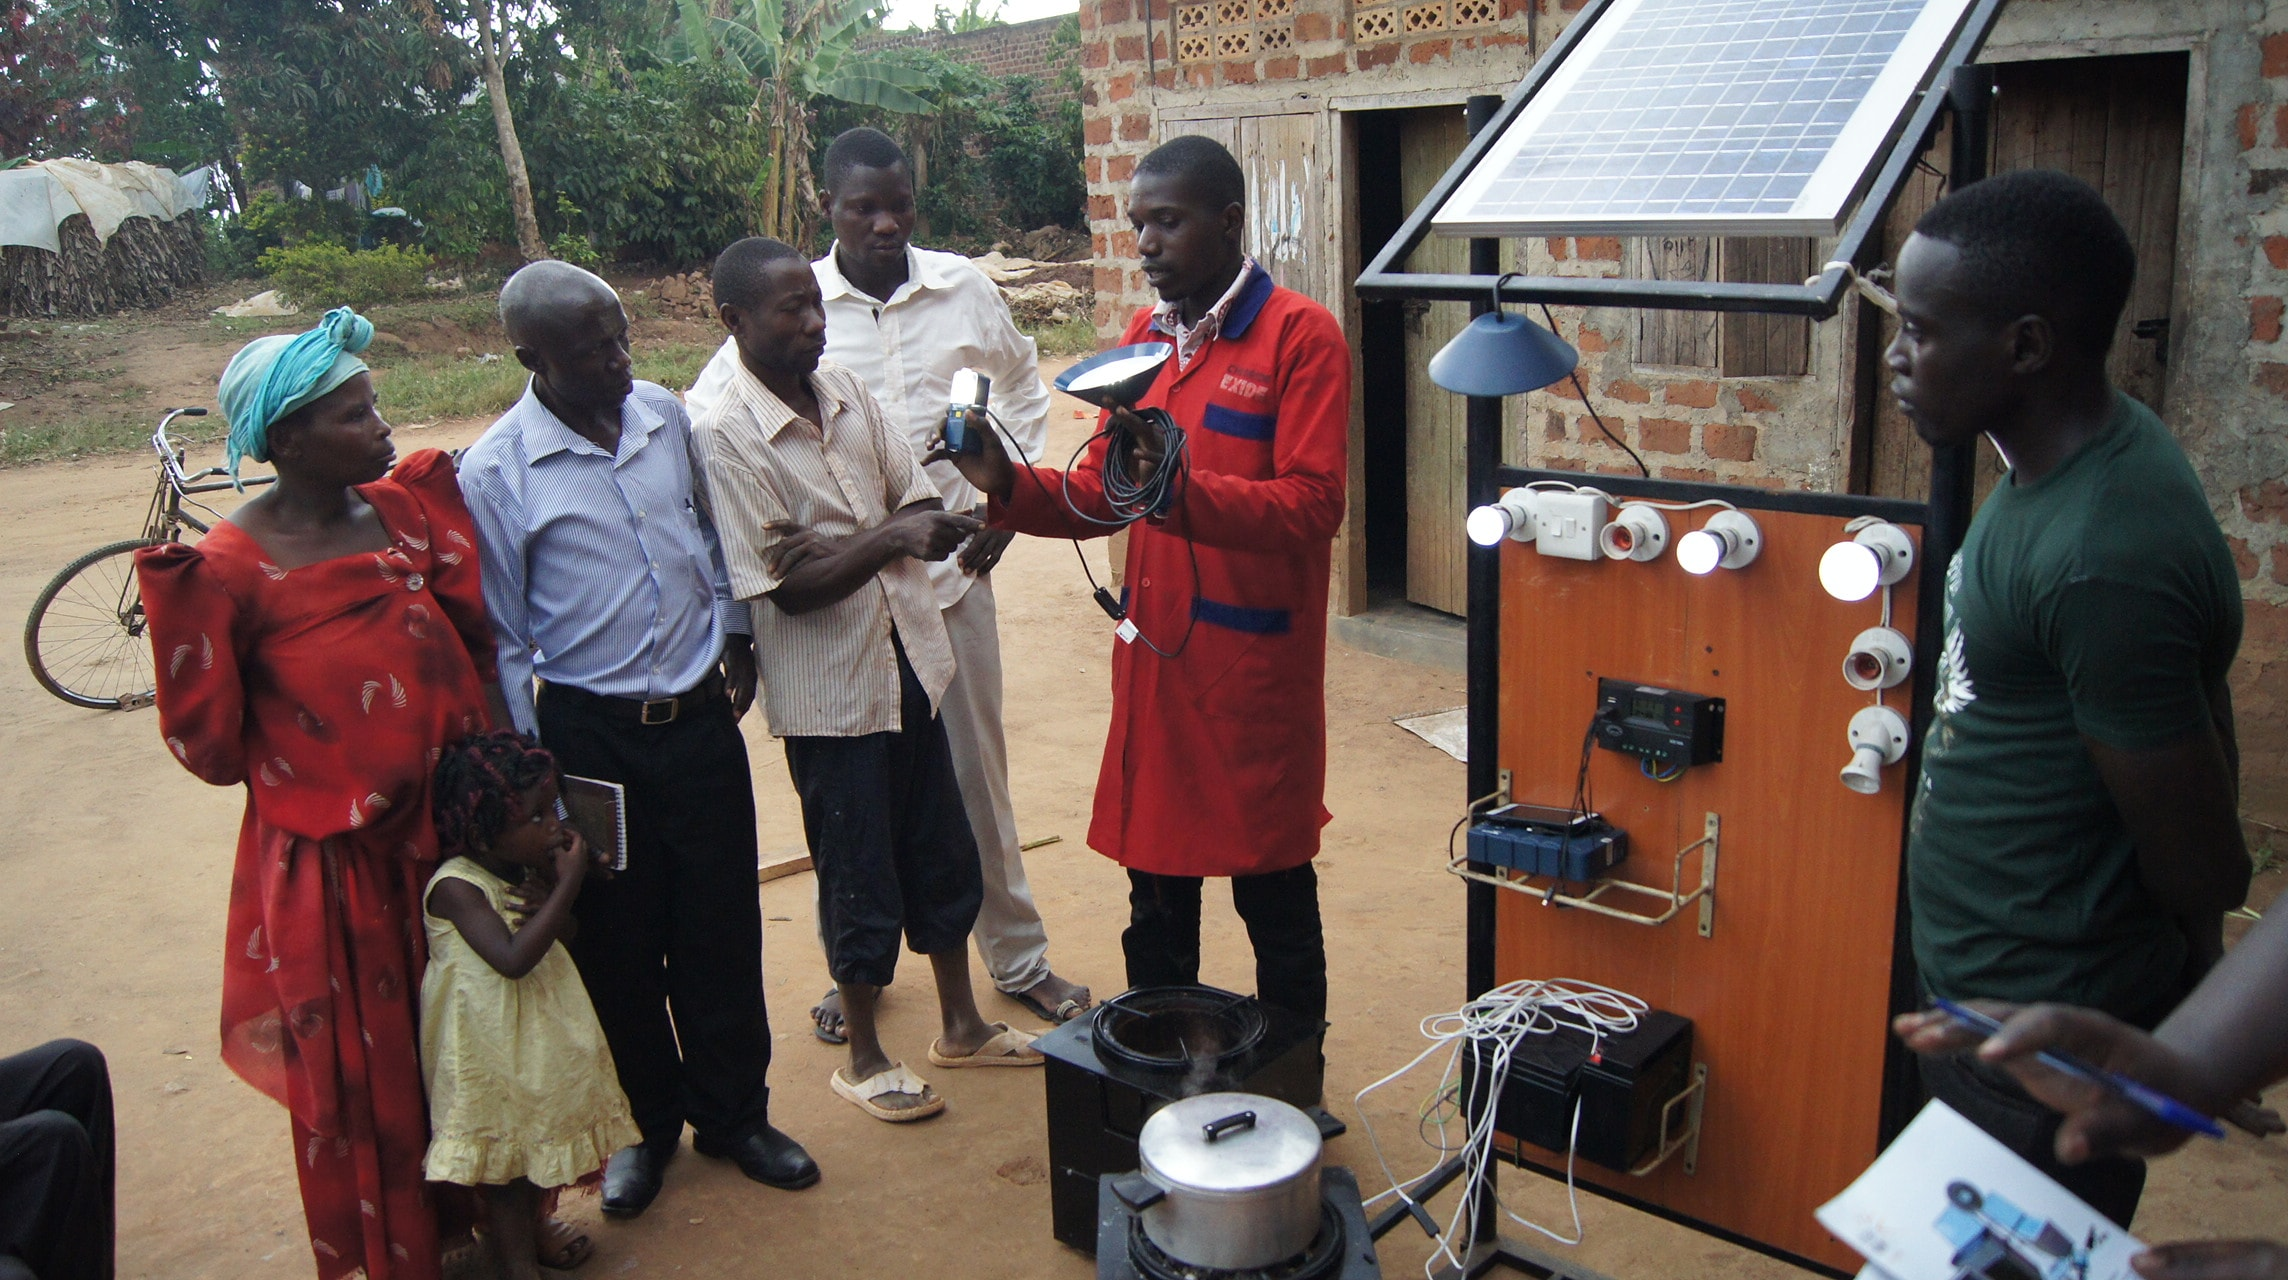 SOLAR AIDED COOK STOVES SAVING MORE IN UGANDA